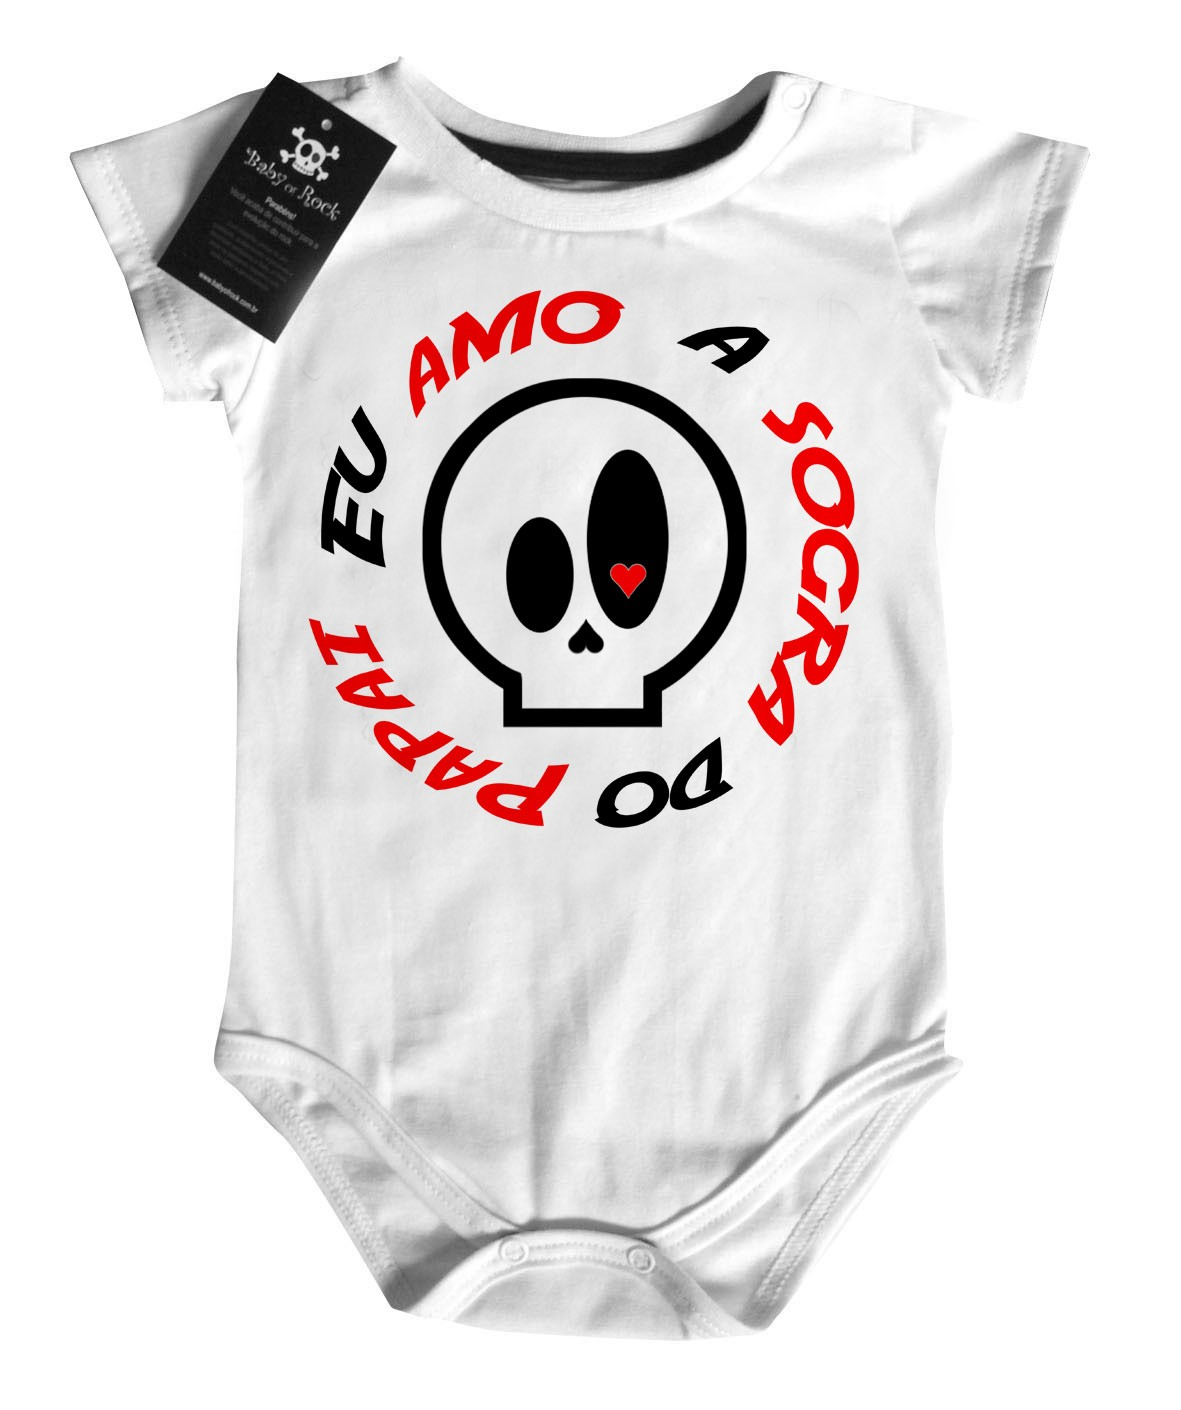 Body Baby Divertido - Amo a sogra do Papai - White  - Baby Monster S/A